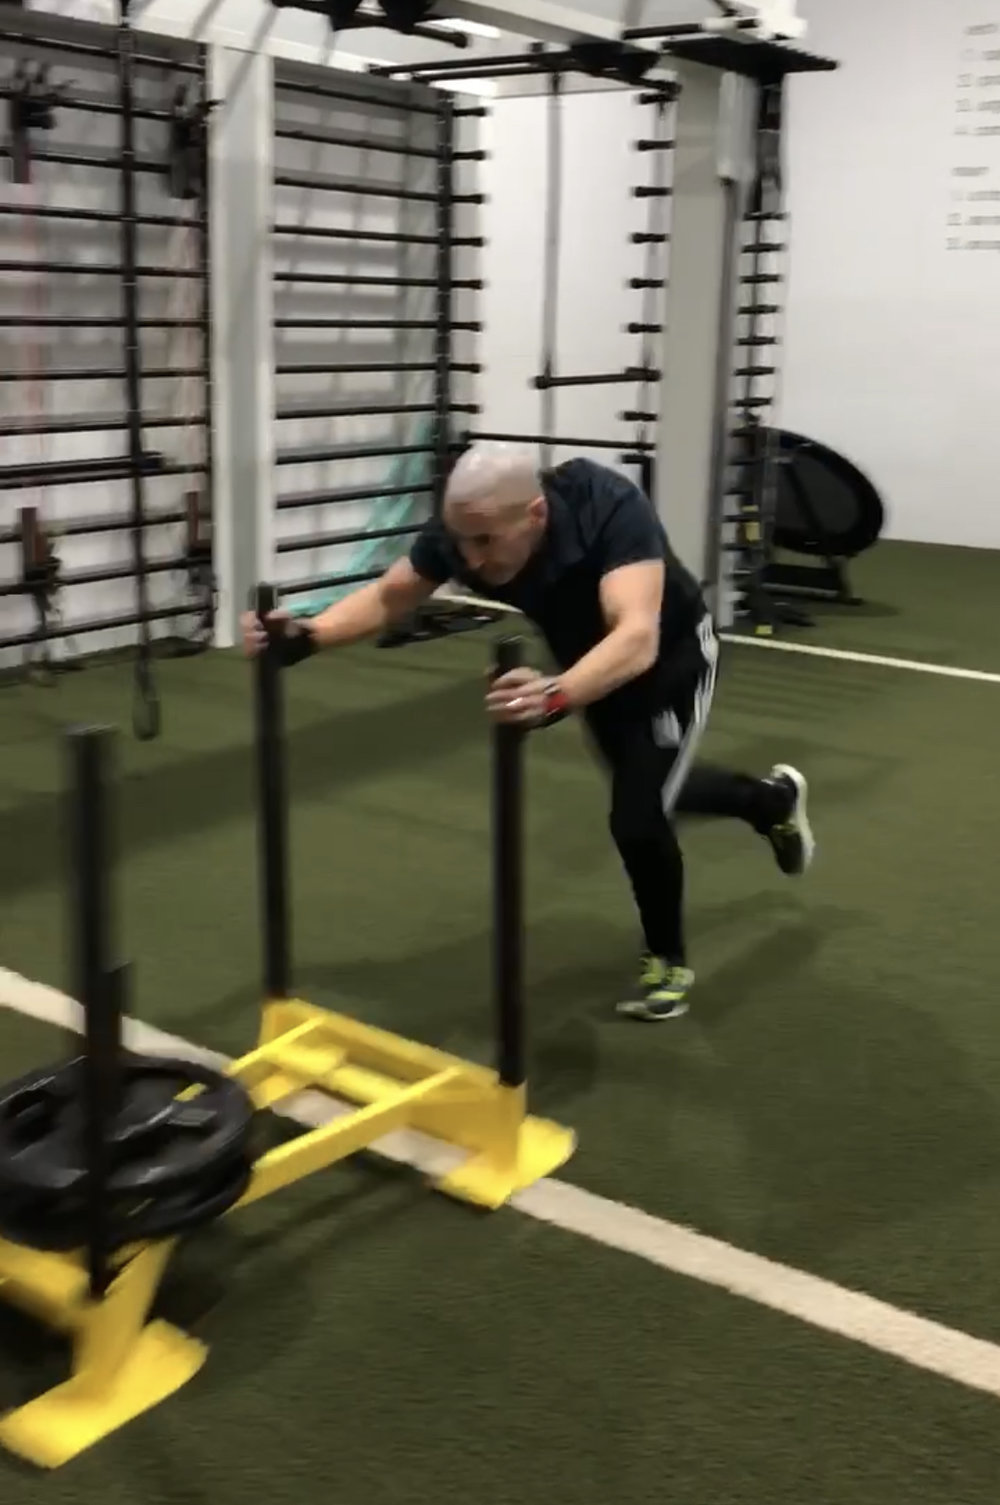 """Pushing the sled improves strength, anerobic stamina and speed."" - Dr. Wald"